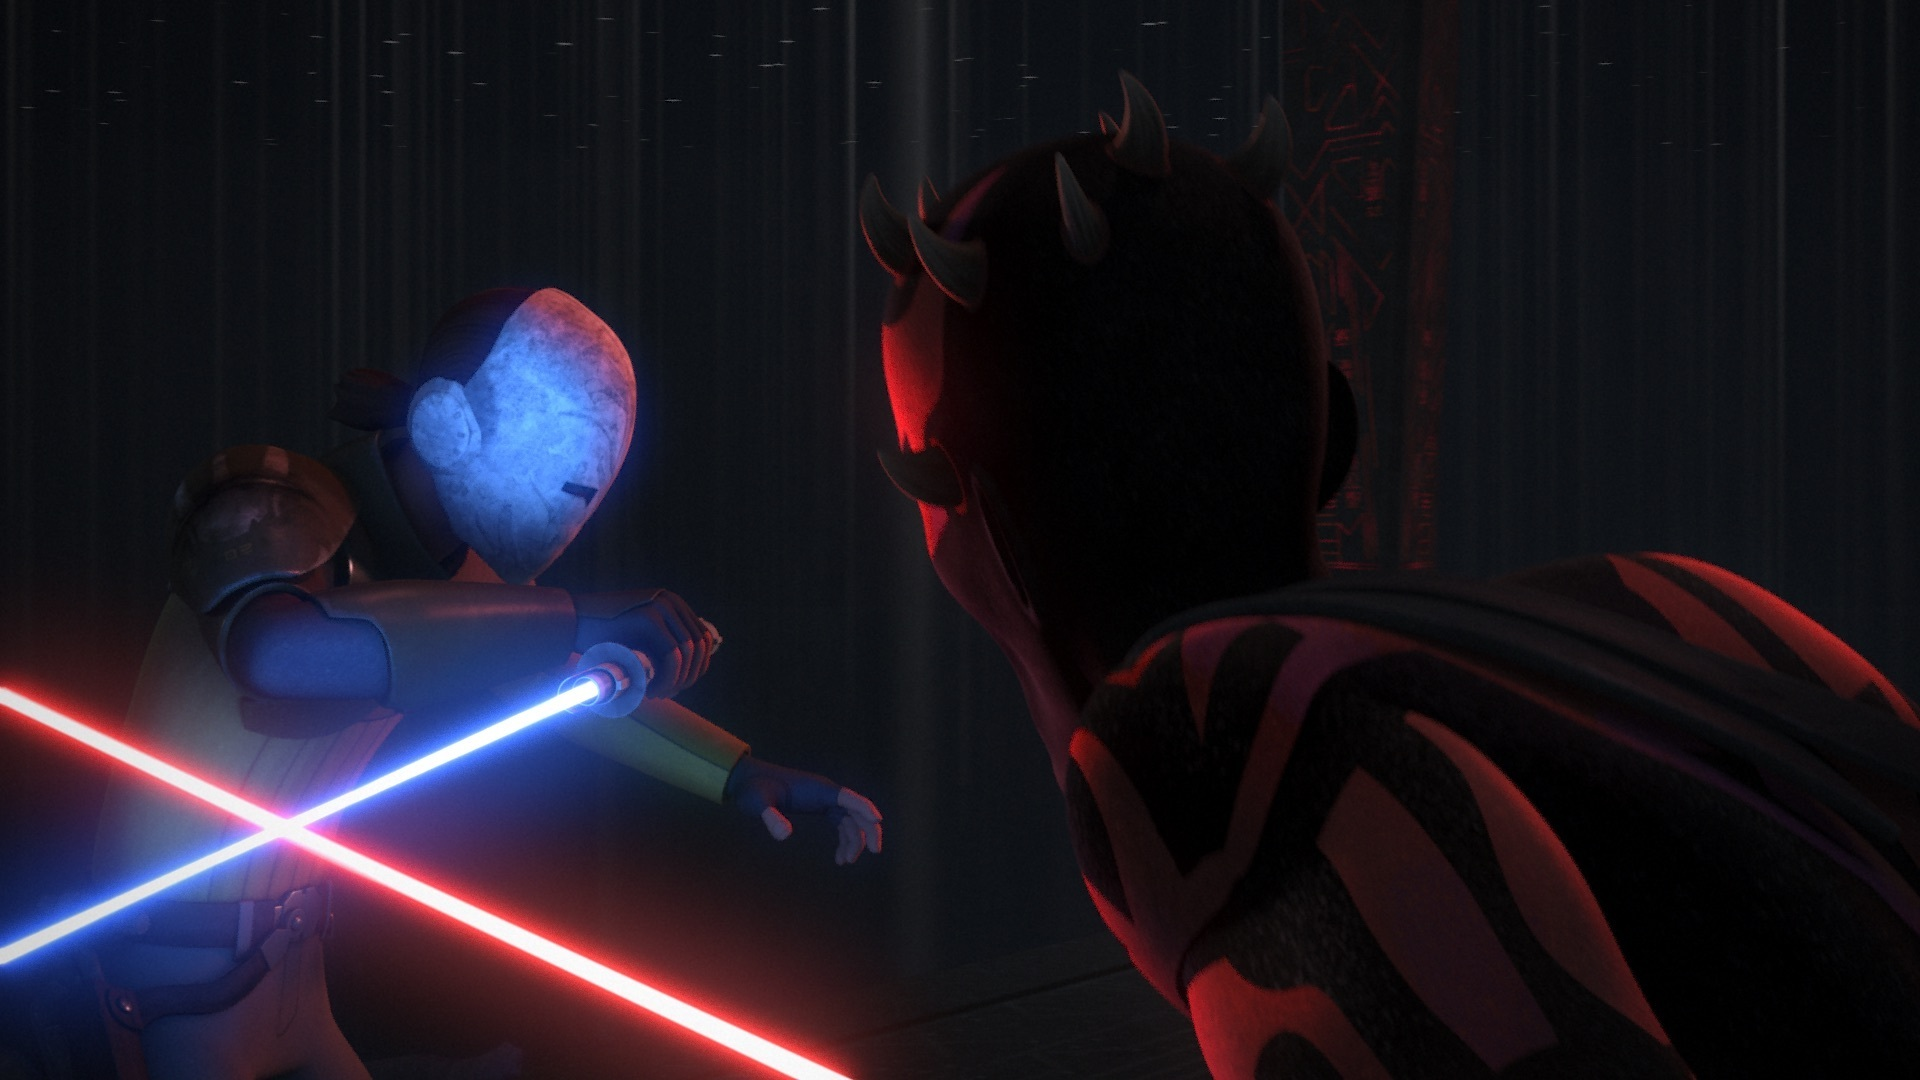 Star Wars Rebels - Kanan fighting Maul